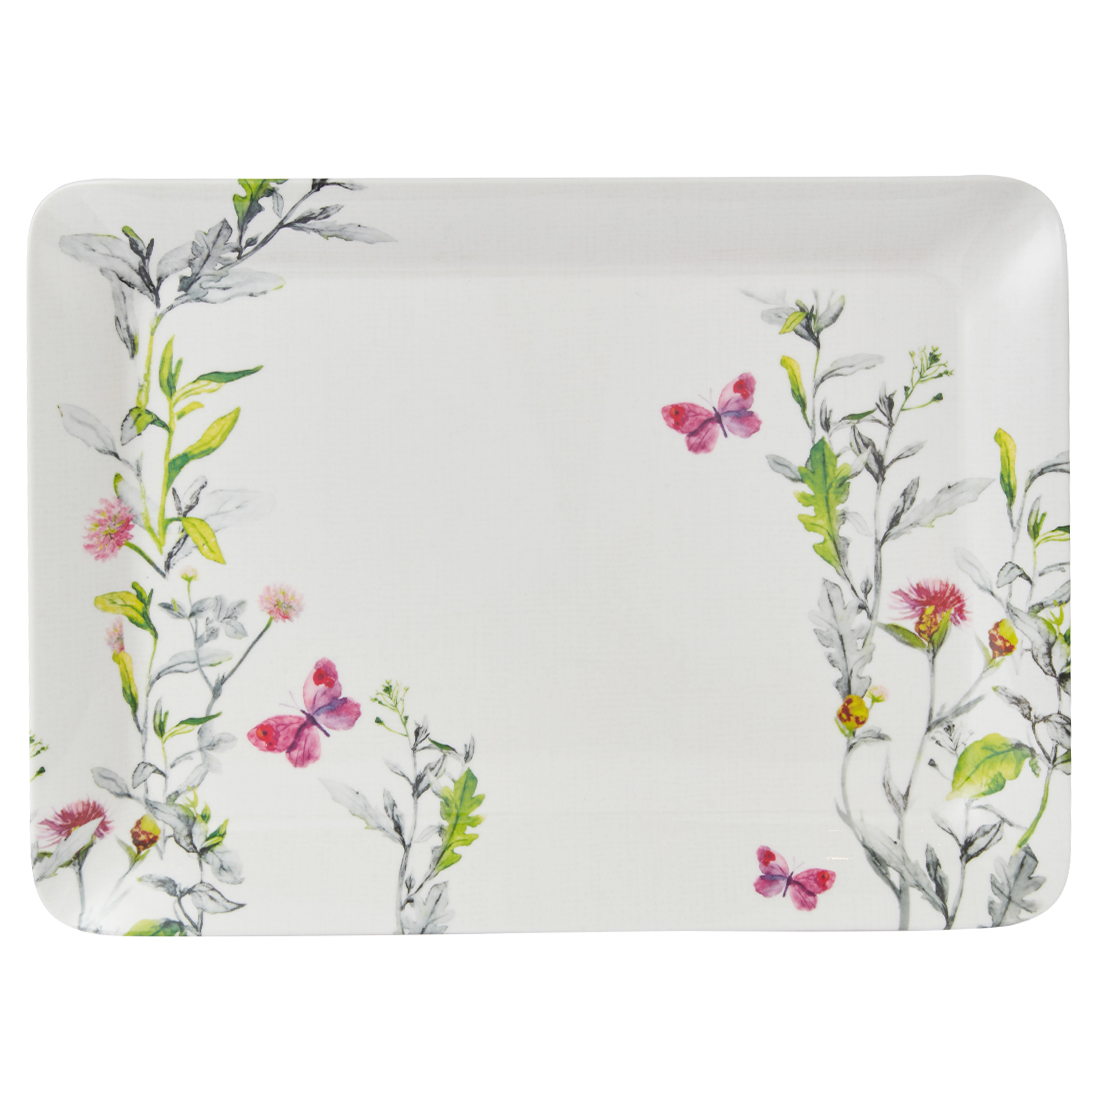 Aster Stylo Medium Tray Trays in Multicolour Colour by Living Essence